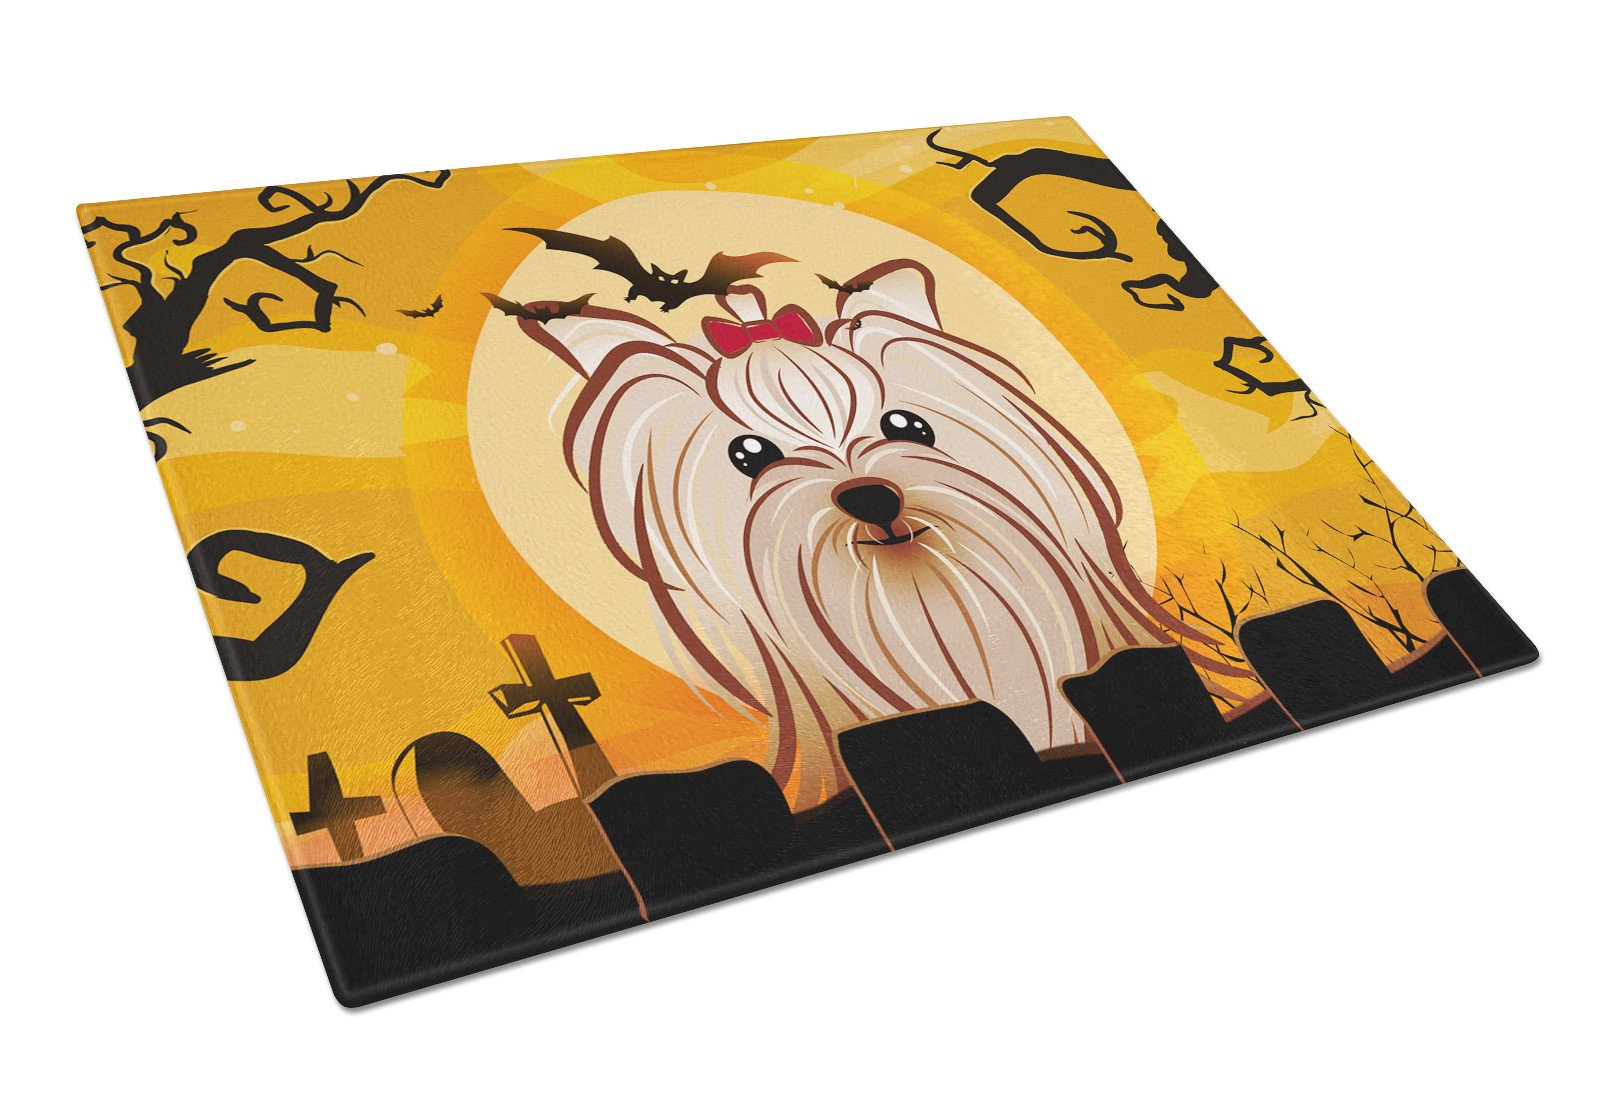 Halloween Yorkie Yorkshire Terrier Glass Cutting Board Large BB1762LCB by Caroline's Treasures